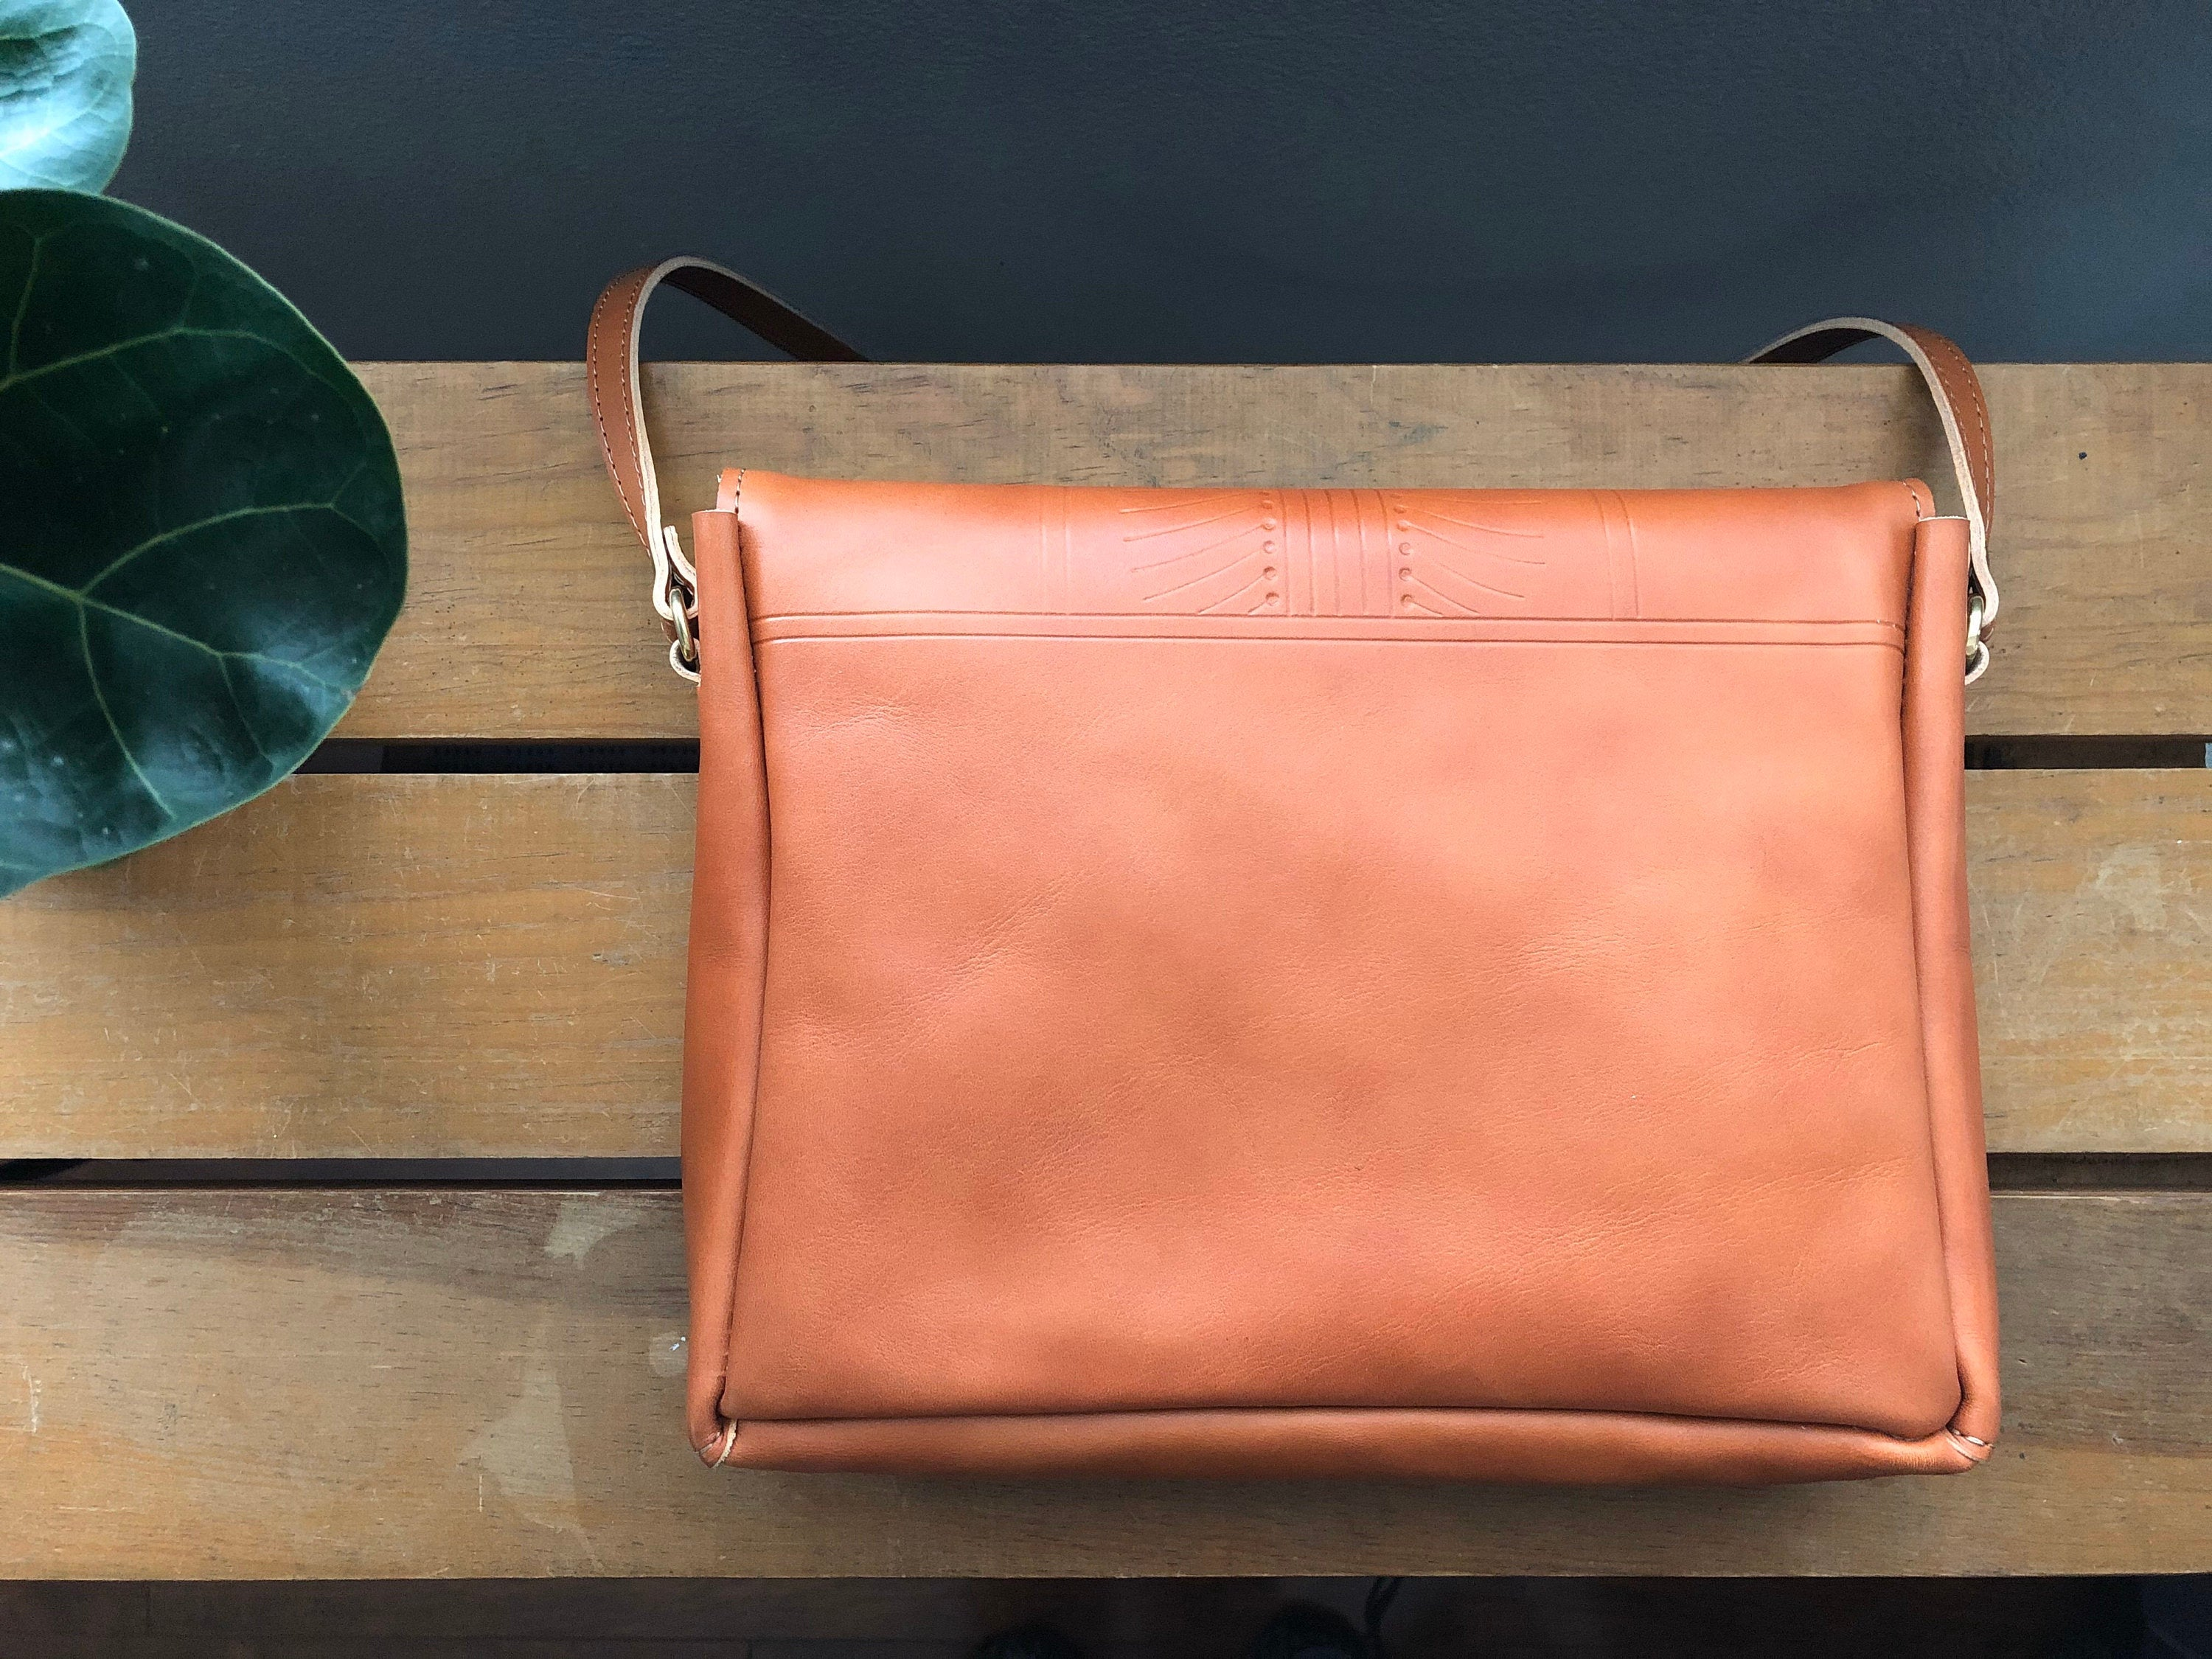 Back of tan leather crossbody bag with small tooling detail. Resting on table near plant